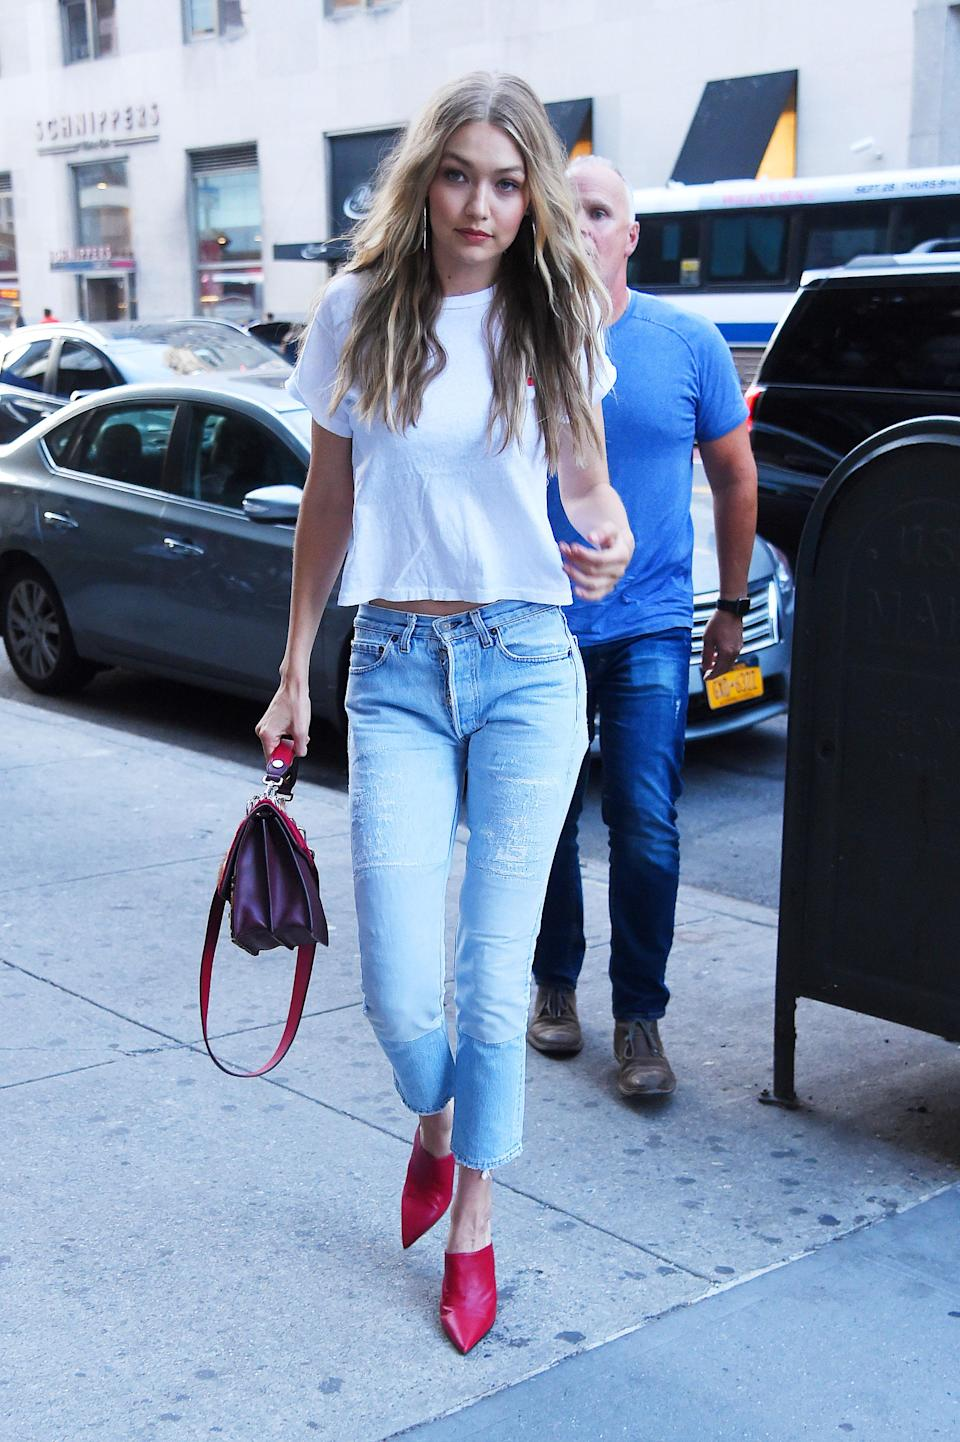 Gigi Hadid is firing back at a journalist who made anti-Muslim remarks. (Photo: Getty Images)